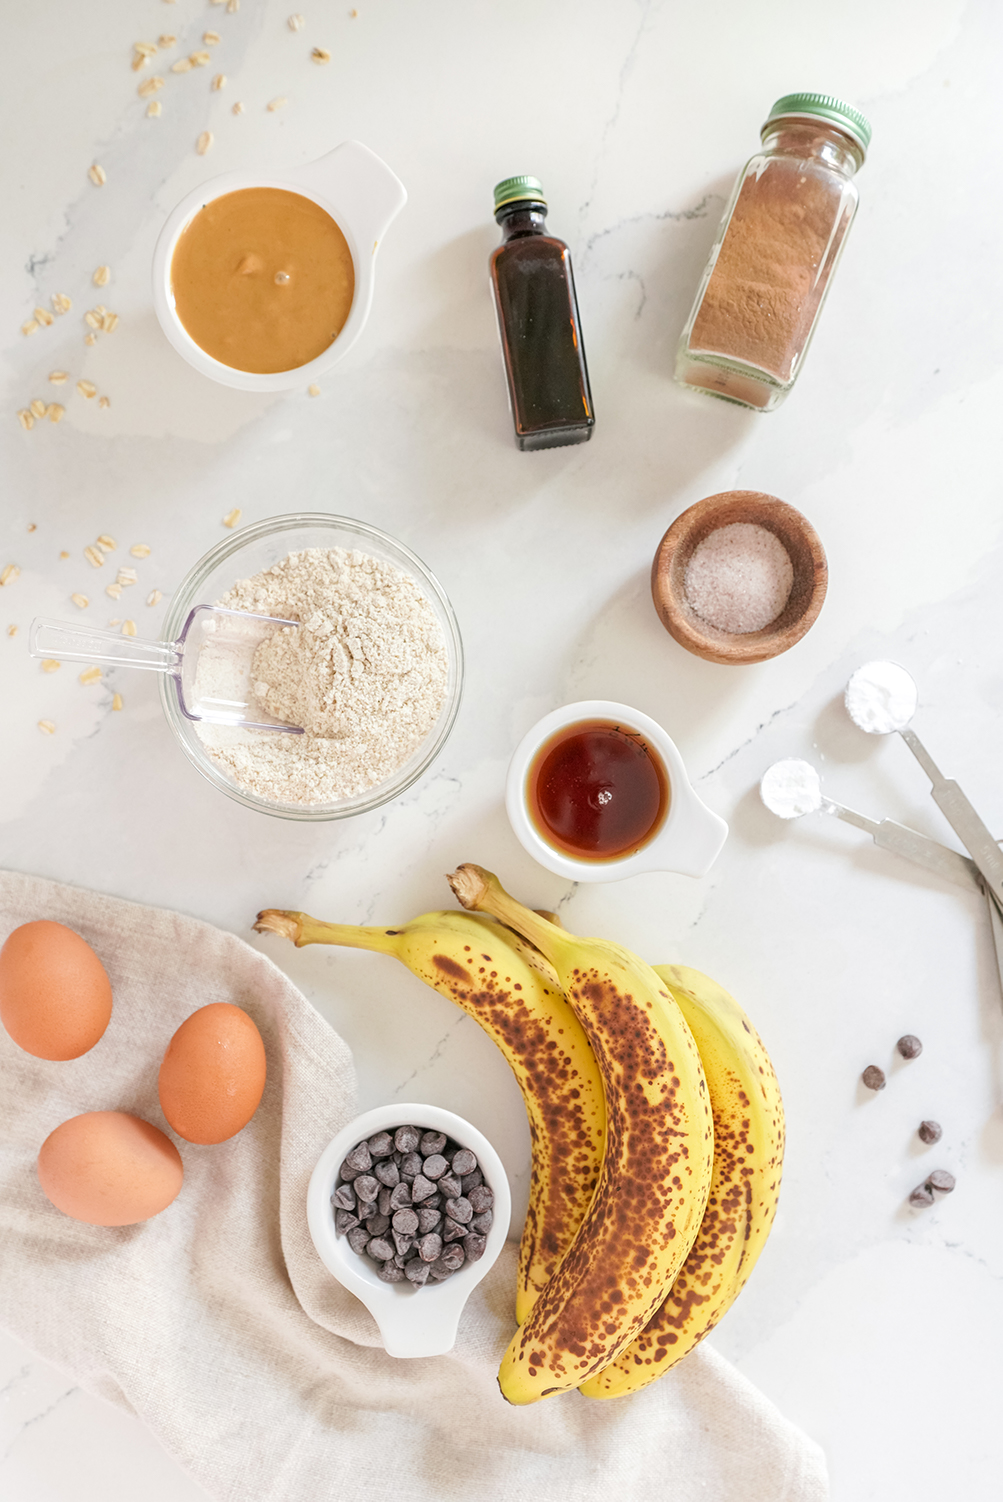 Bananas, flour, eggs and other ingredients on a white surface